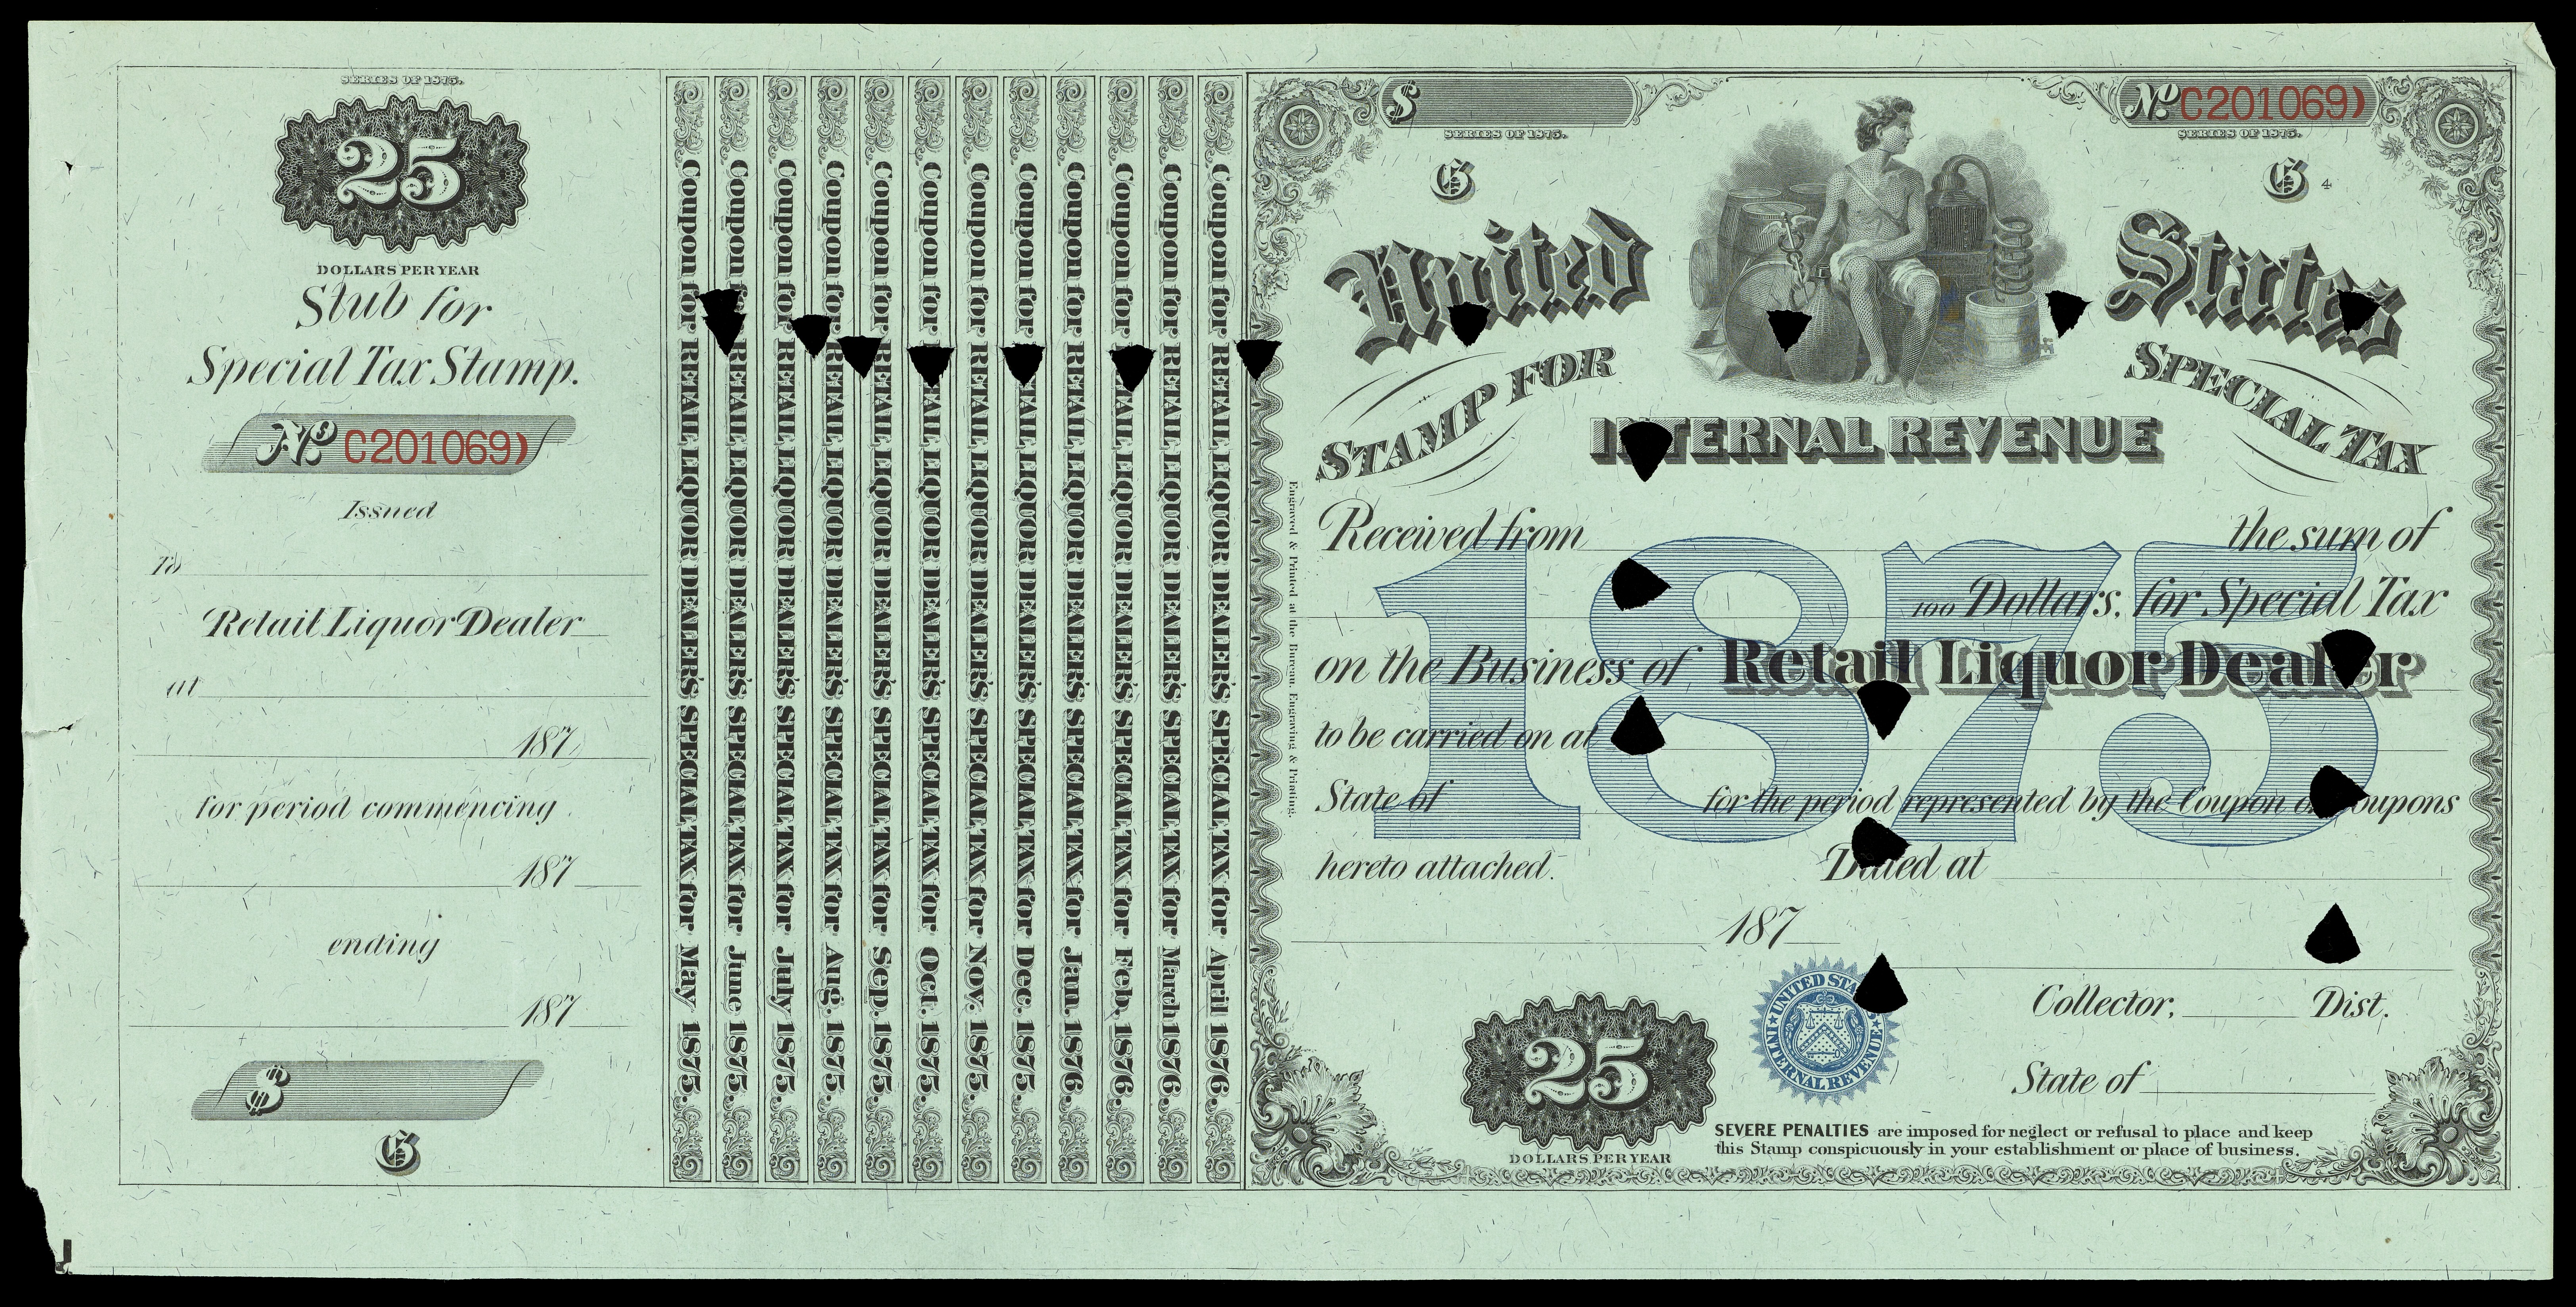 FileUnited States Internal Revenue Stamp For Special Tax Wellcome L0064705